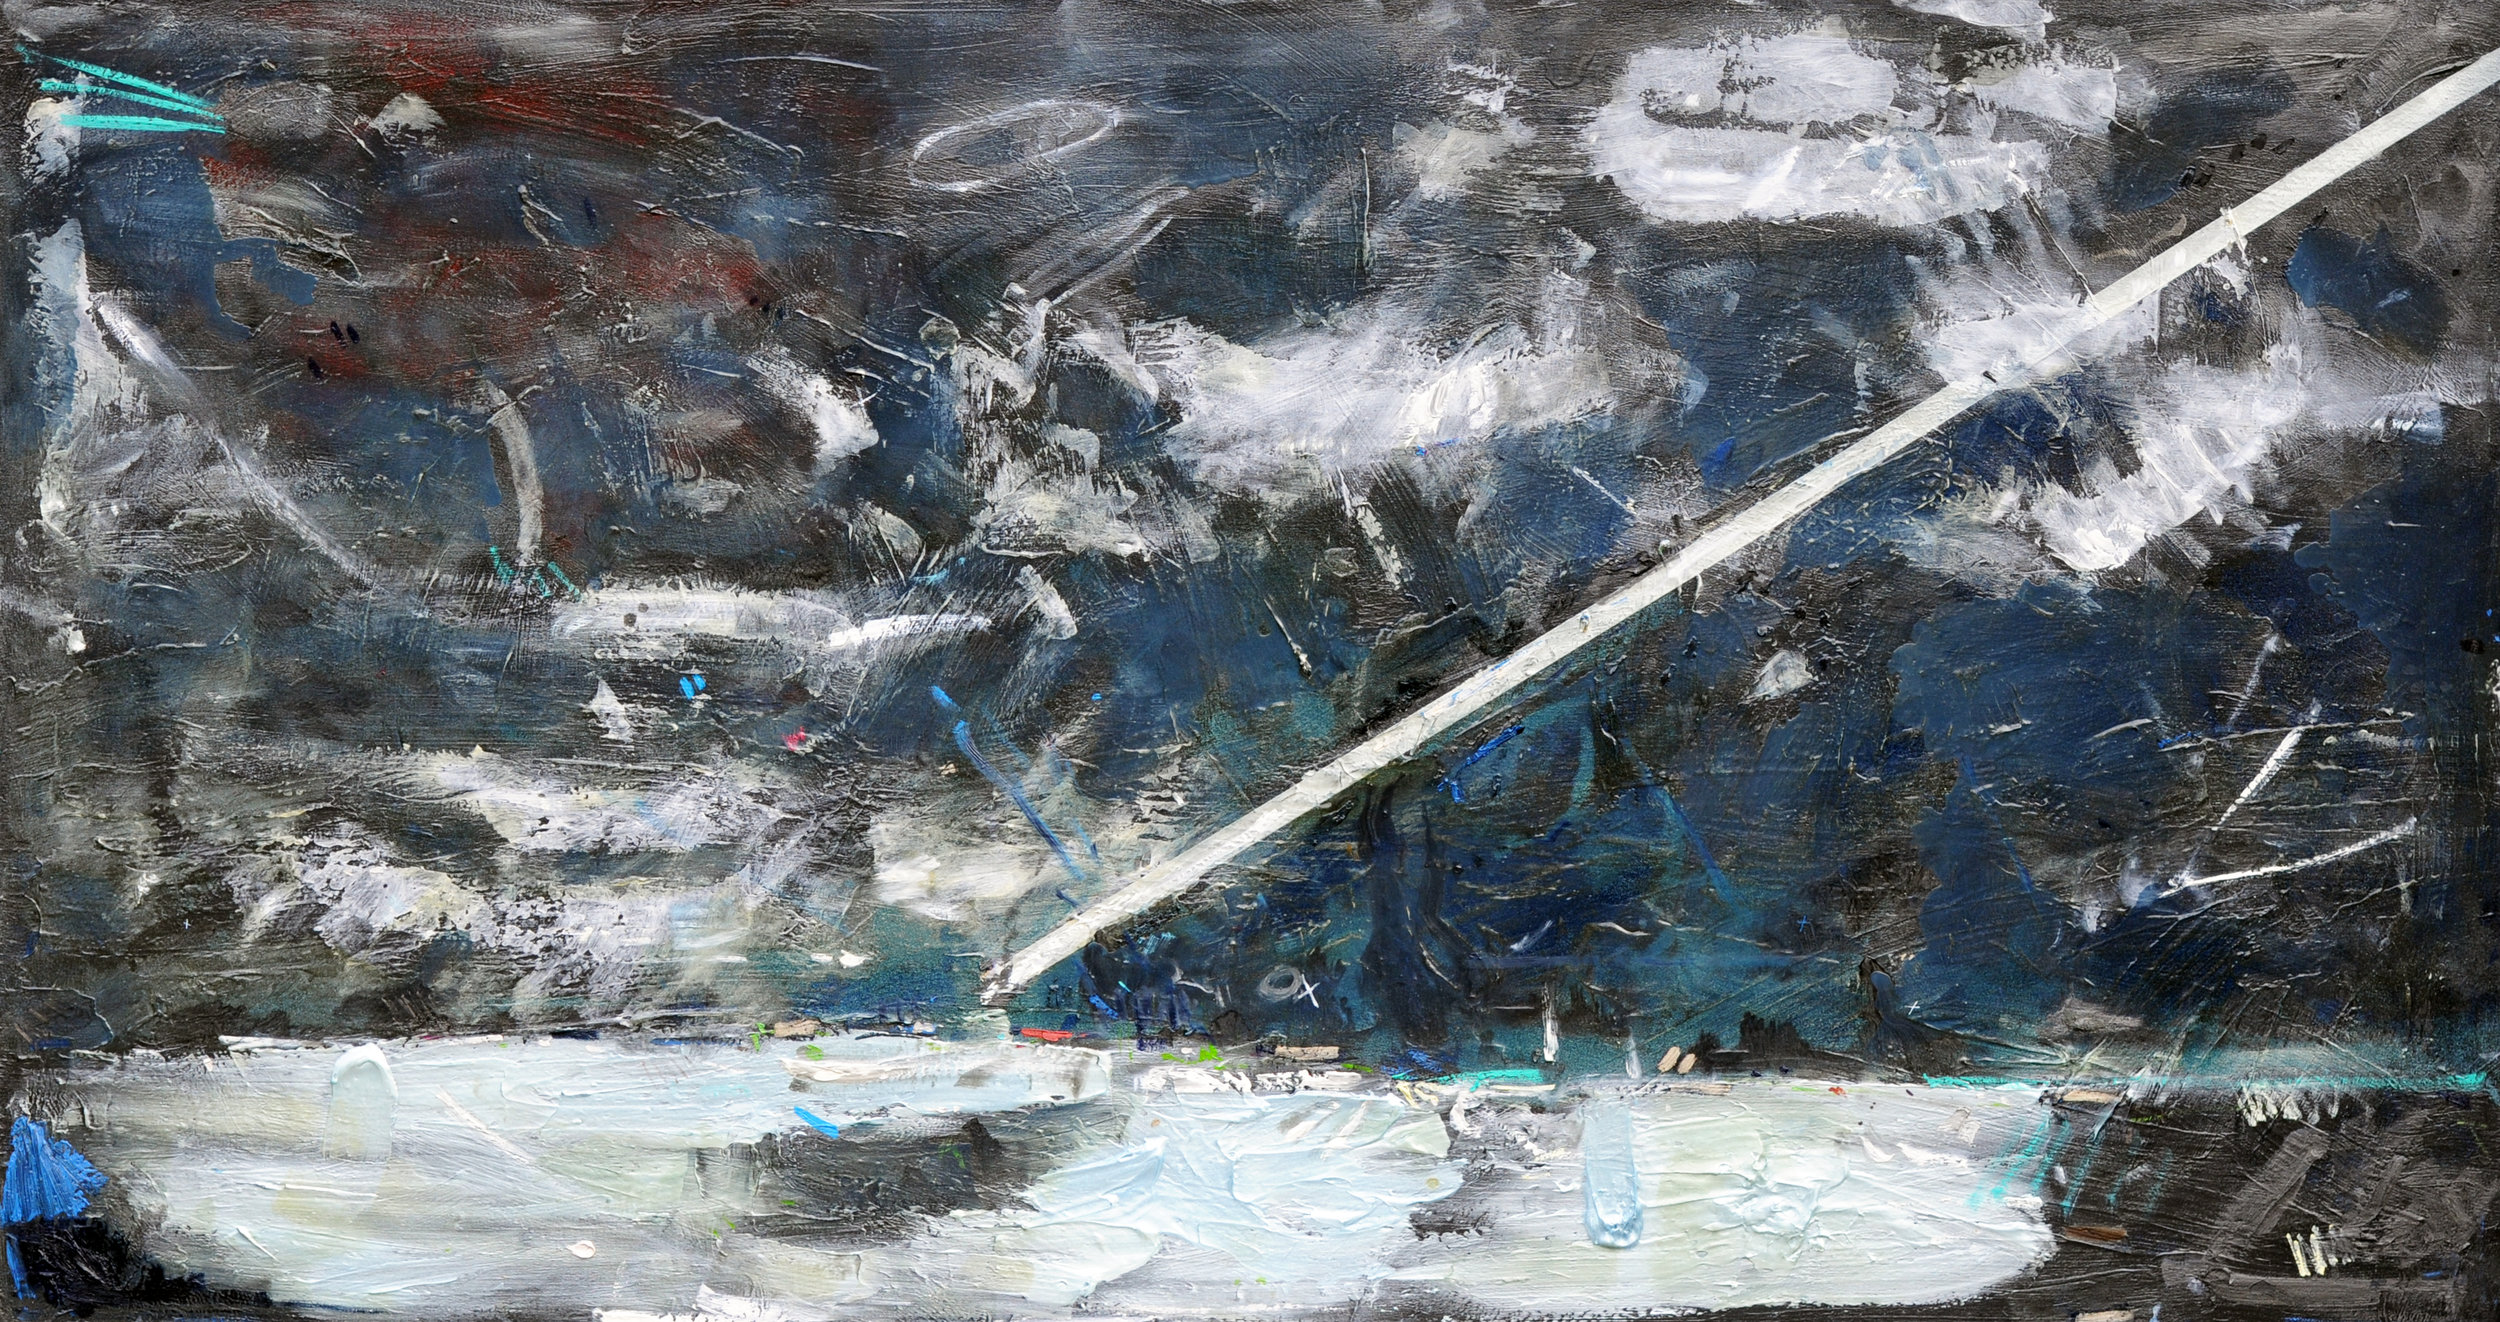 Descent  2008  Oil on Canvas  48 by 90 inches.jpg